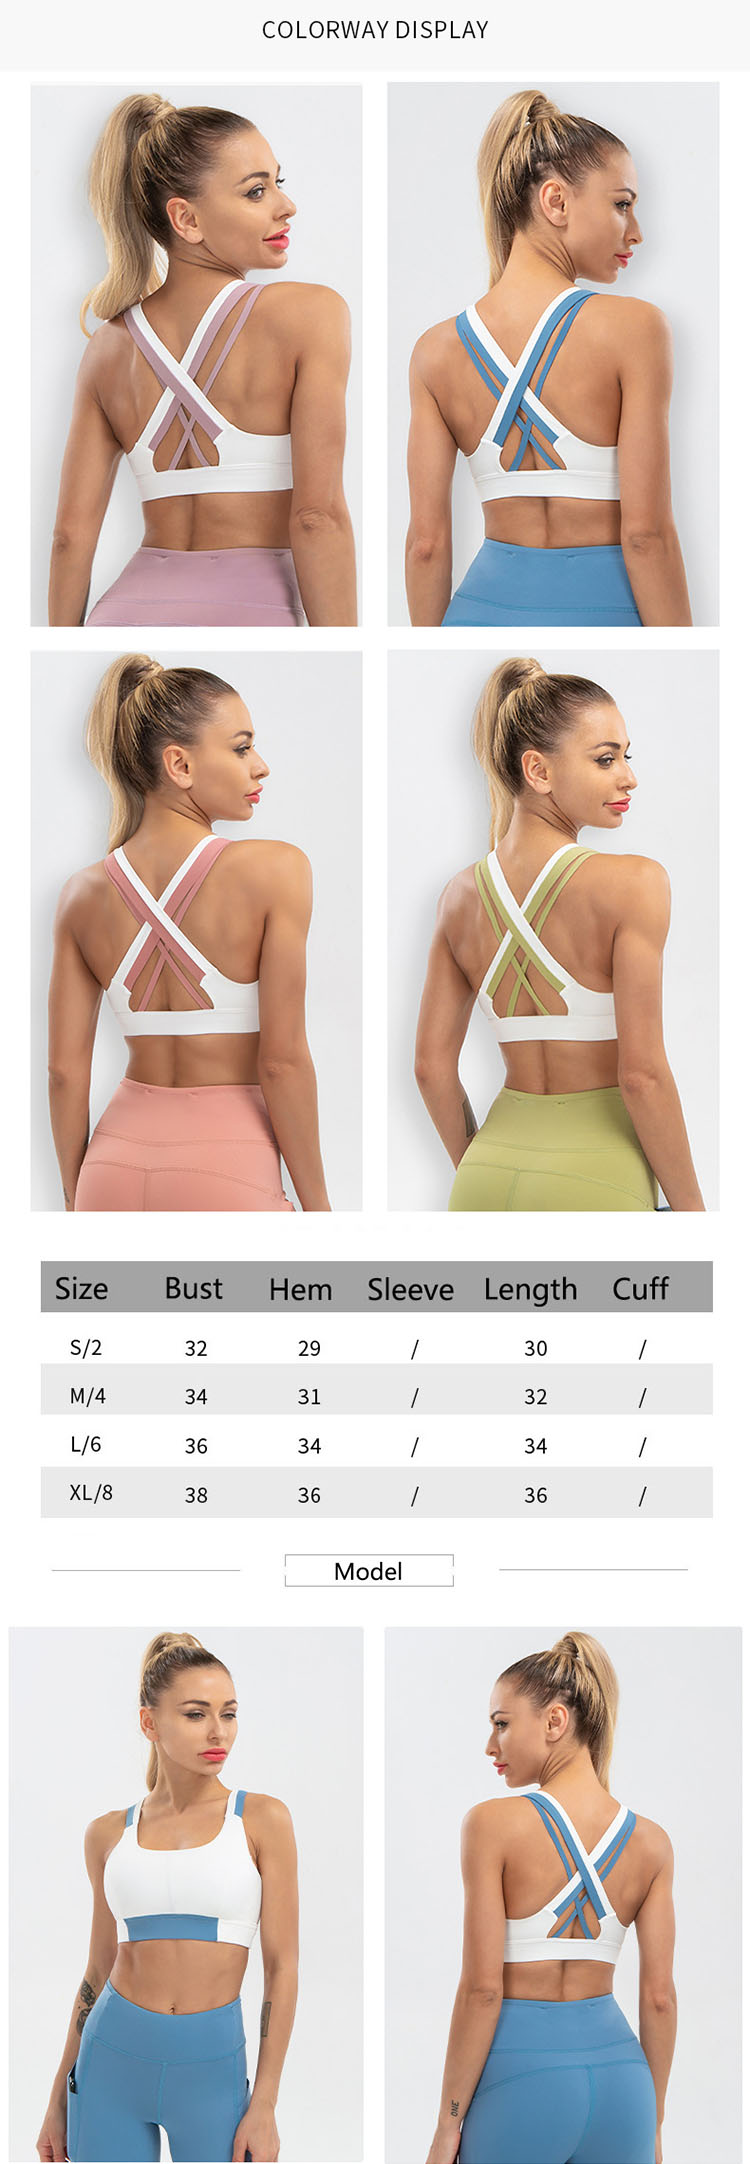 The full support sports bra is designed with no steel ring and no padding